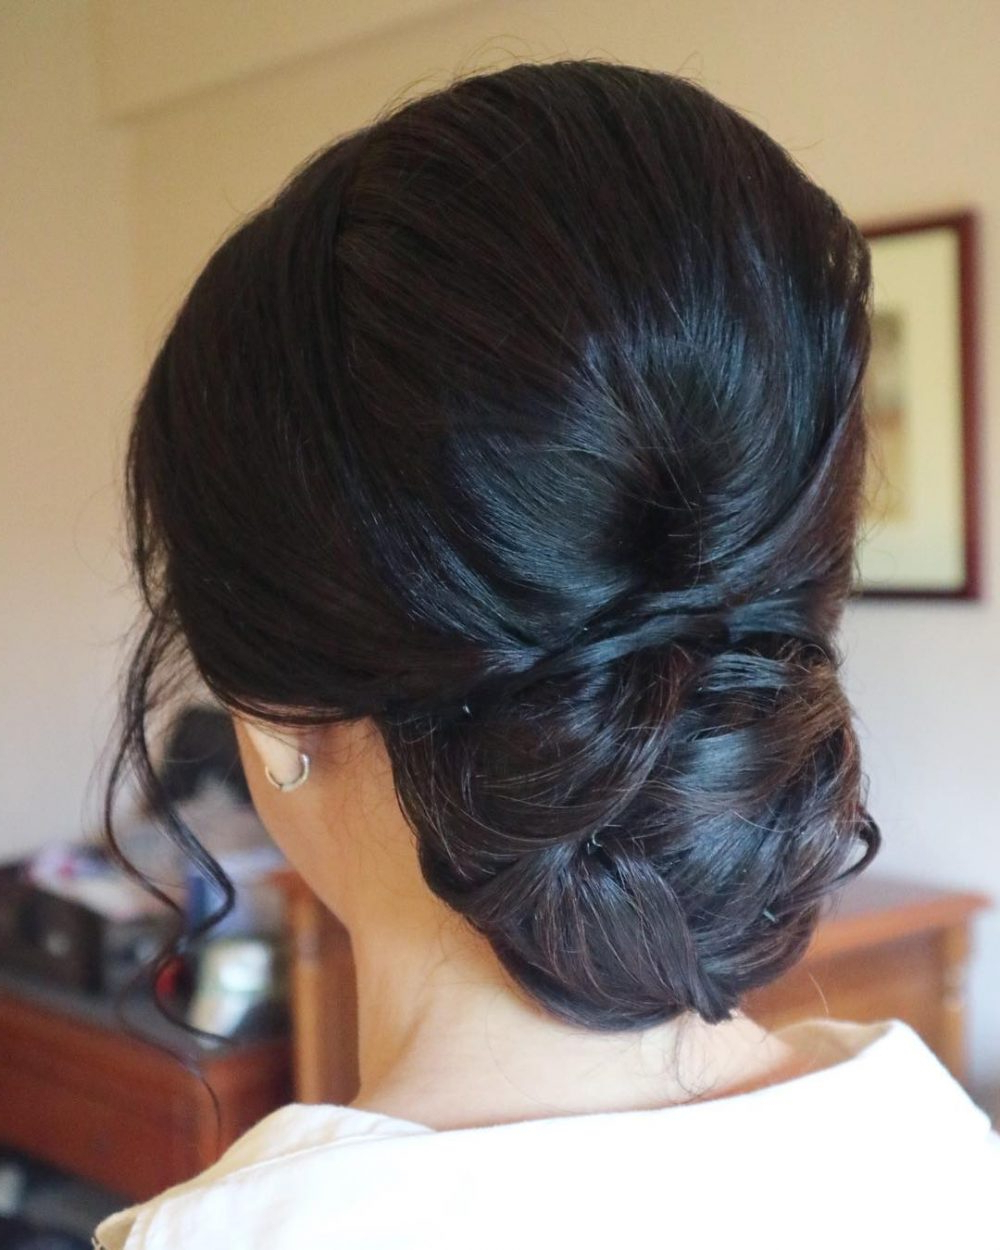 Preferred Low Twisted Bun Wedding Hairstyles For Long Hair Throughout 28 Cute & Easy Updos For Long Hair (2019 Trends) (View 13 of 20)